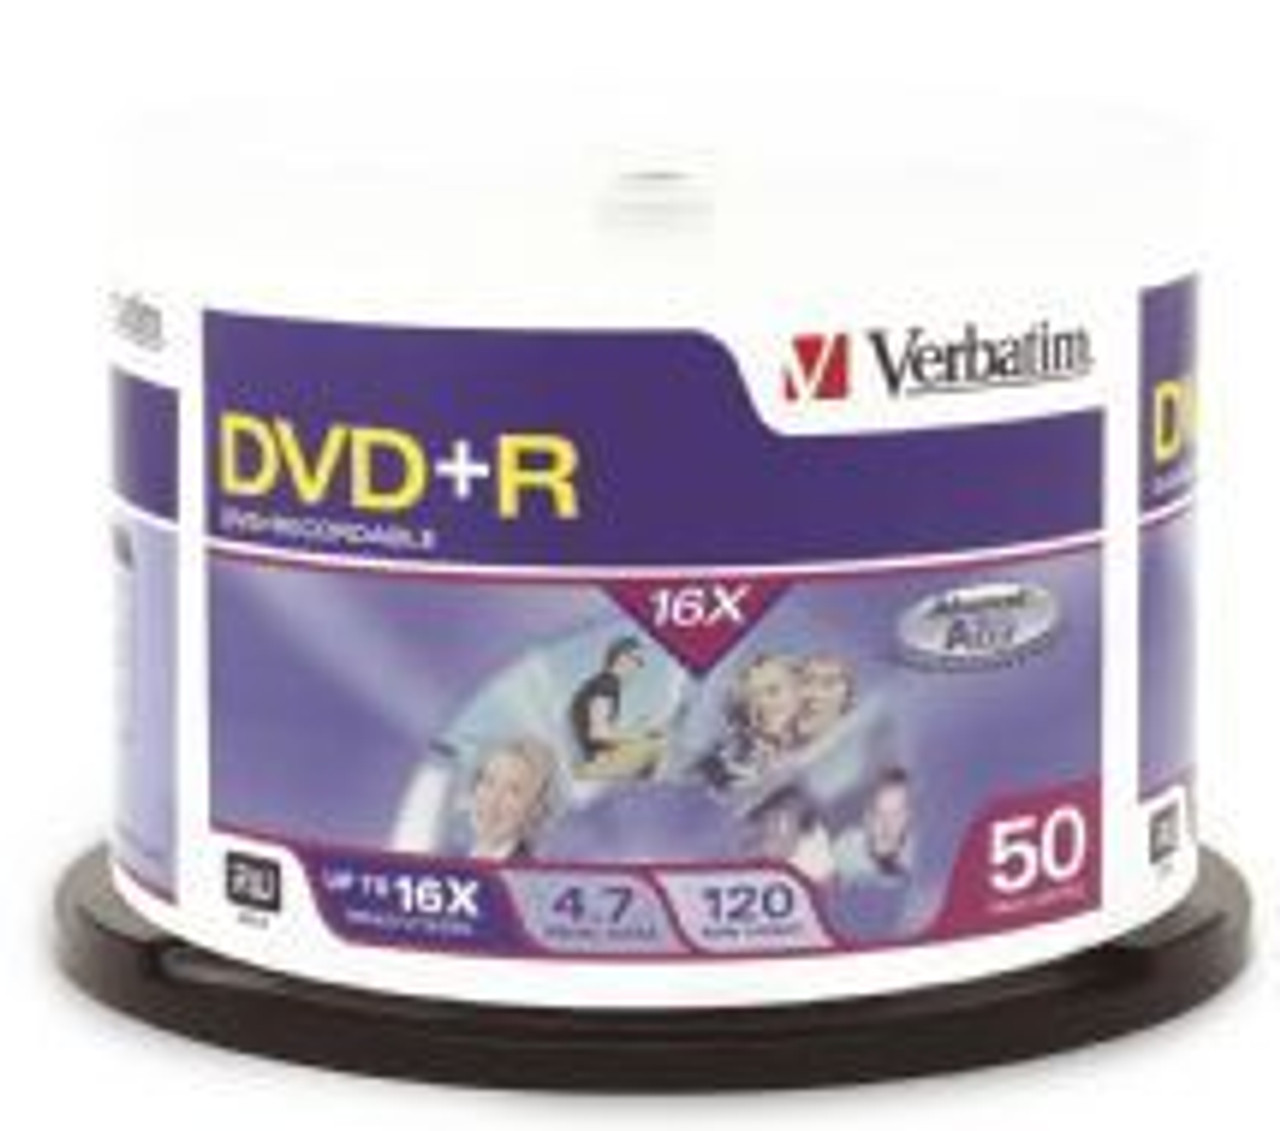 Image for Verbatim DVD+R 4.7GB 50Pack Spindle 16x (95037) CX Computer Superstore